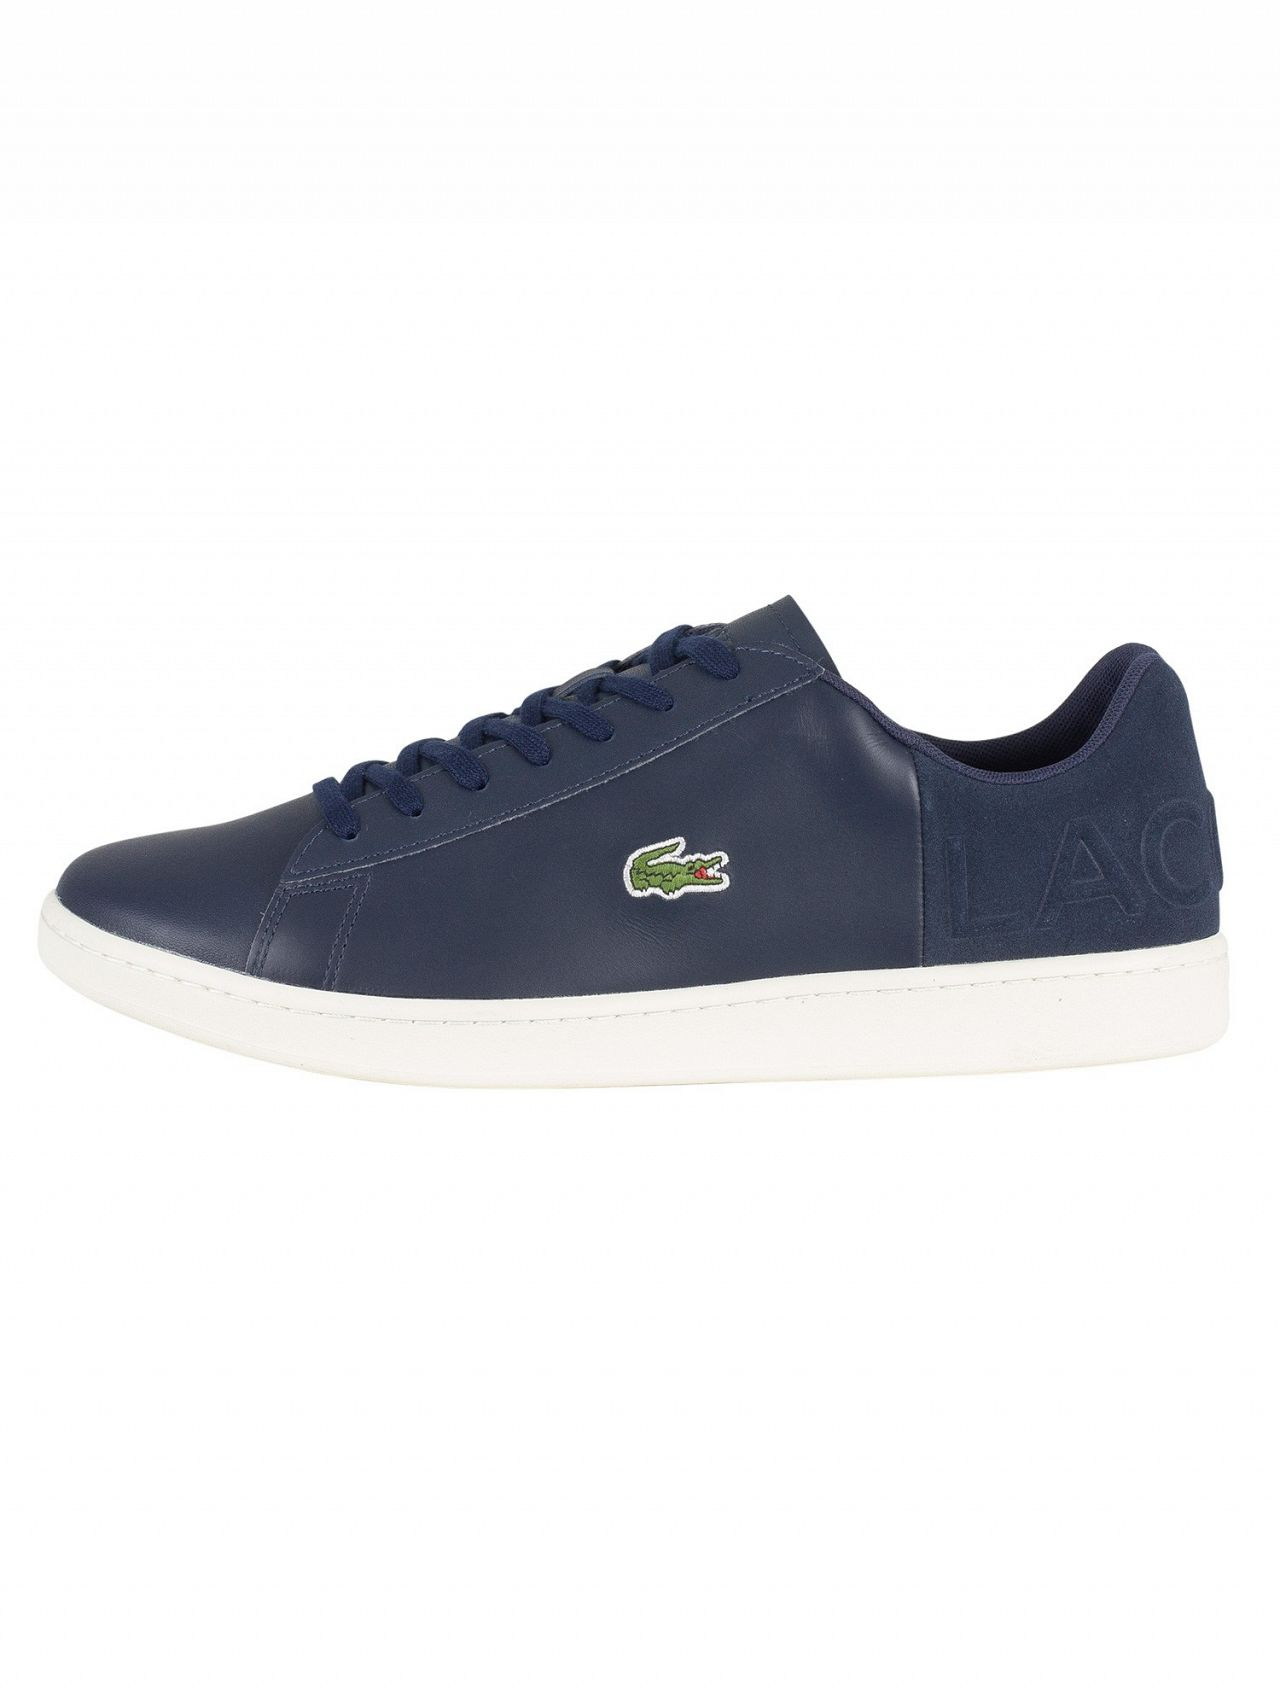 445cc362d802a4 Lacoste Navy Off White Carnaby Evo 418 1 SPM Leather Trainers